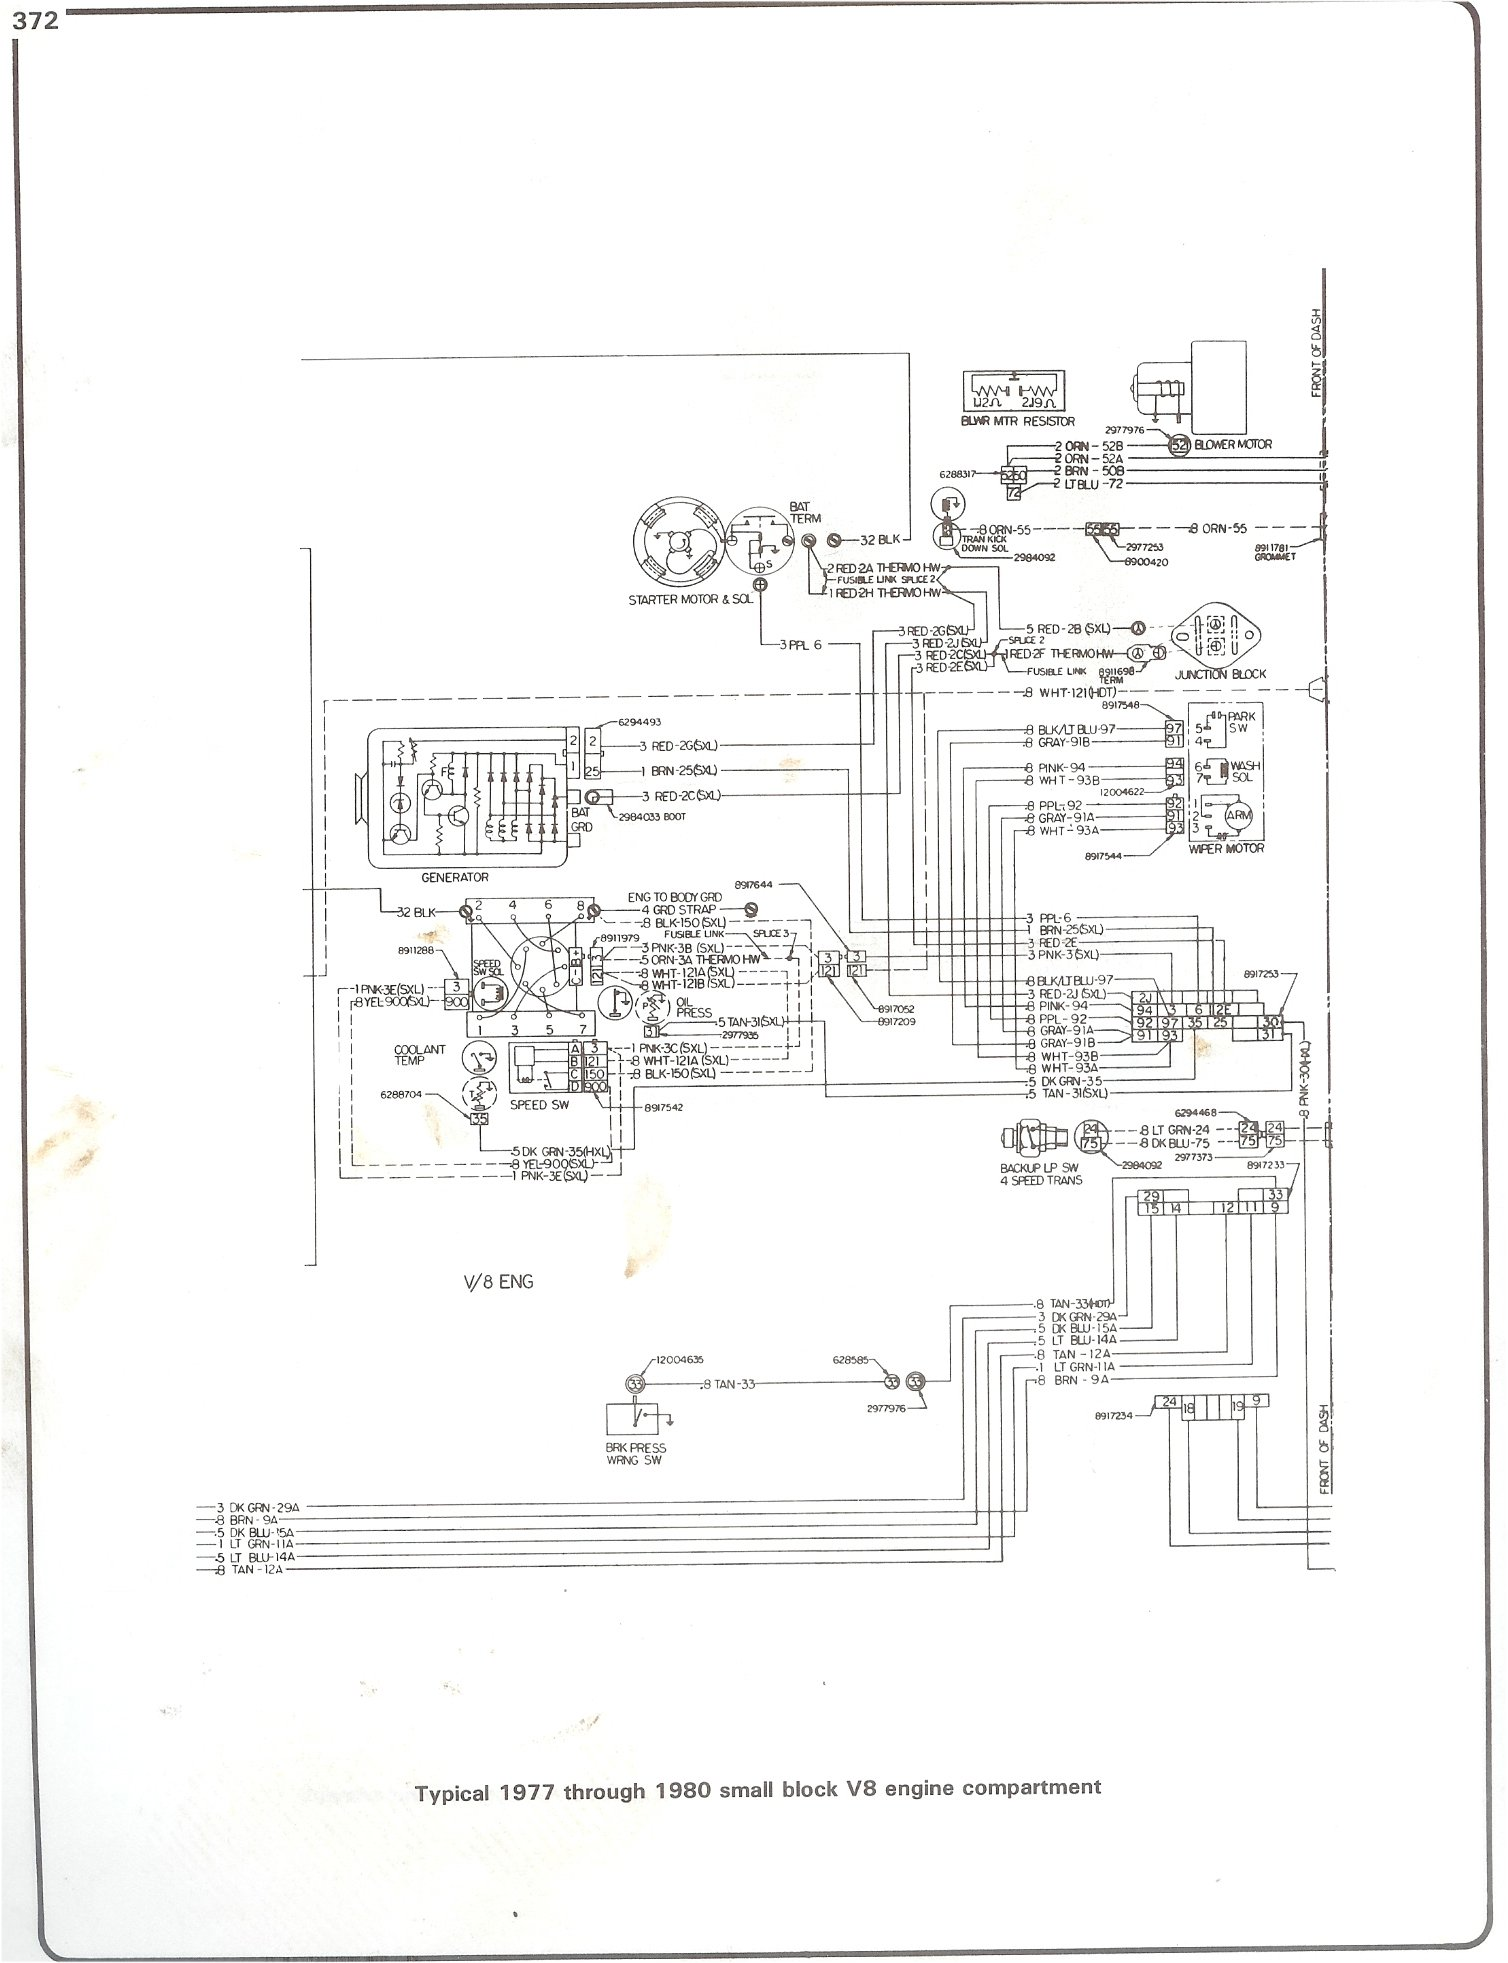 Complete 73-87 Wiring Diagrams on 1995 cadillac wiring diagrams, free gmc parts catalog, free diagrams ford trucks, gmc pickup trailer wiring diagrams, 1993 cadillac wiring diagrams, truck wiring diagrams, vw wiring diagrams, free mercedes-benz diagrams, automotive wiring diagrams, 2006 chrysler pacifica wiring diagrams, vehicle wiring diagrams,